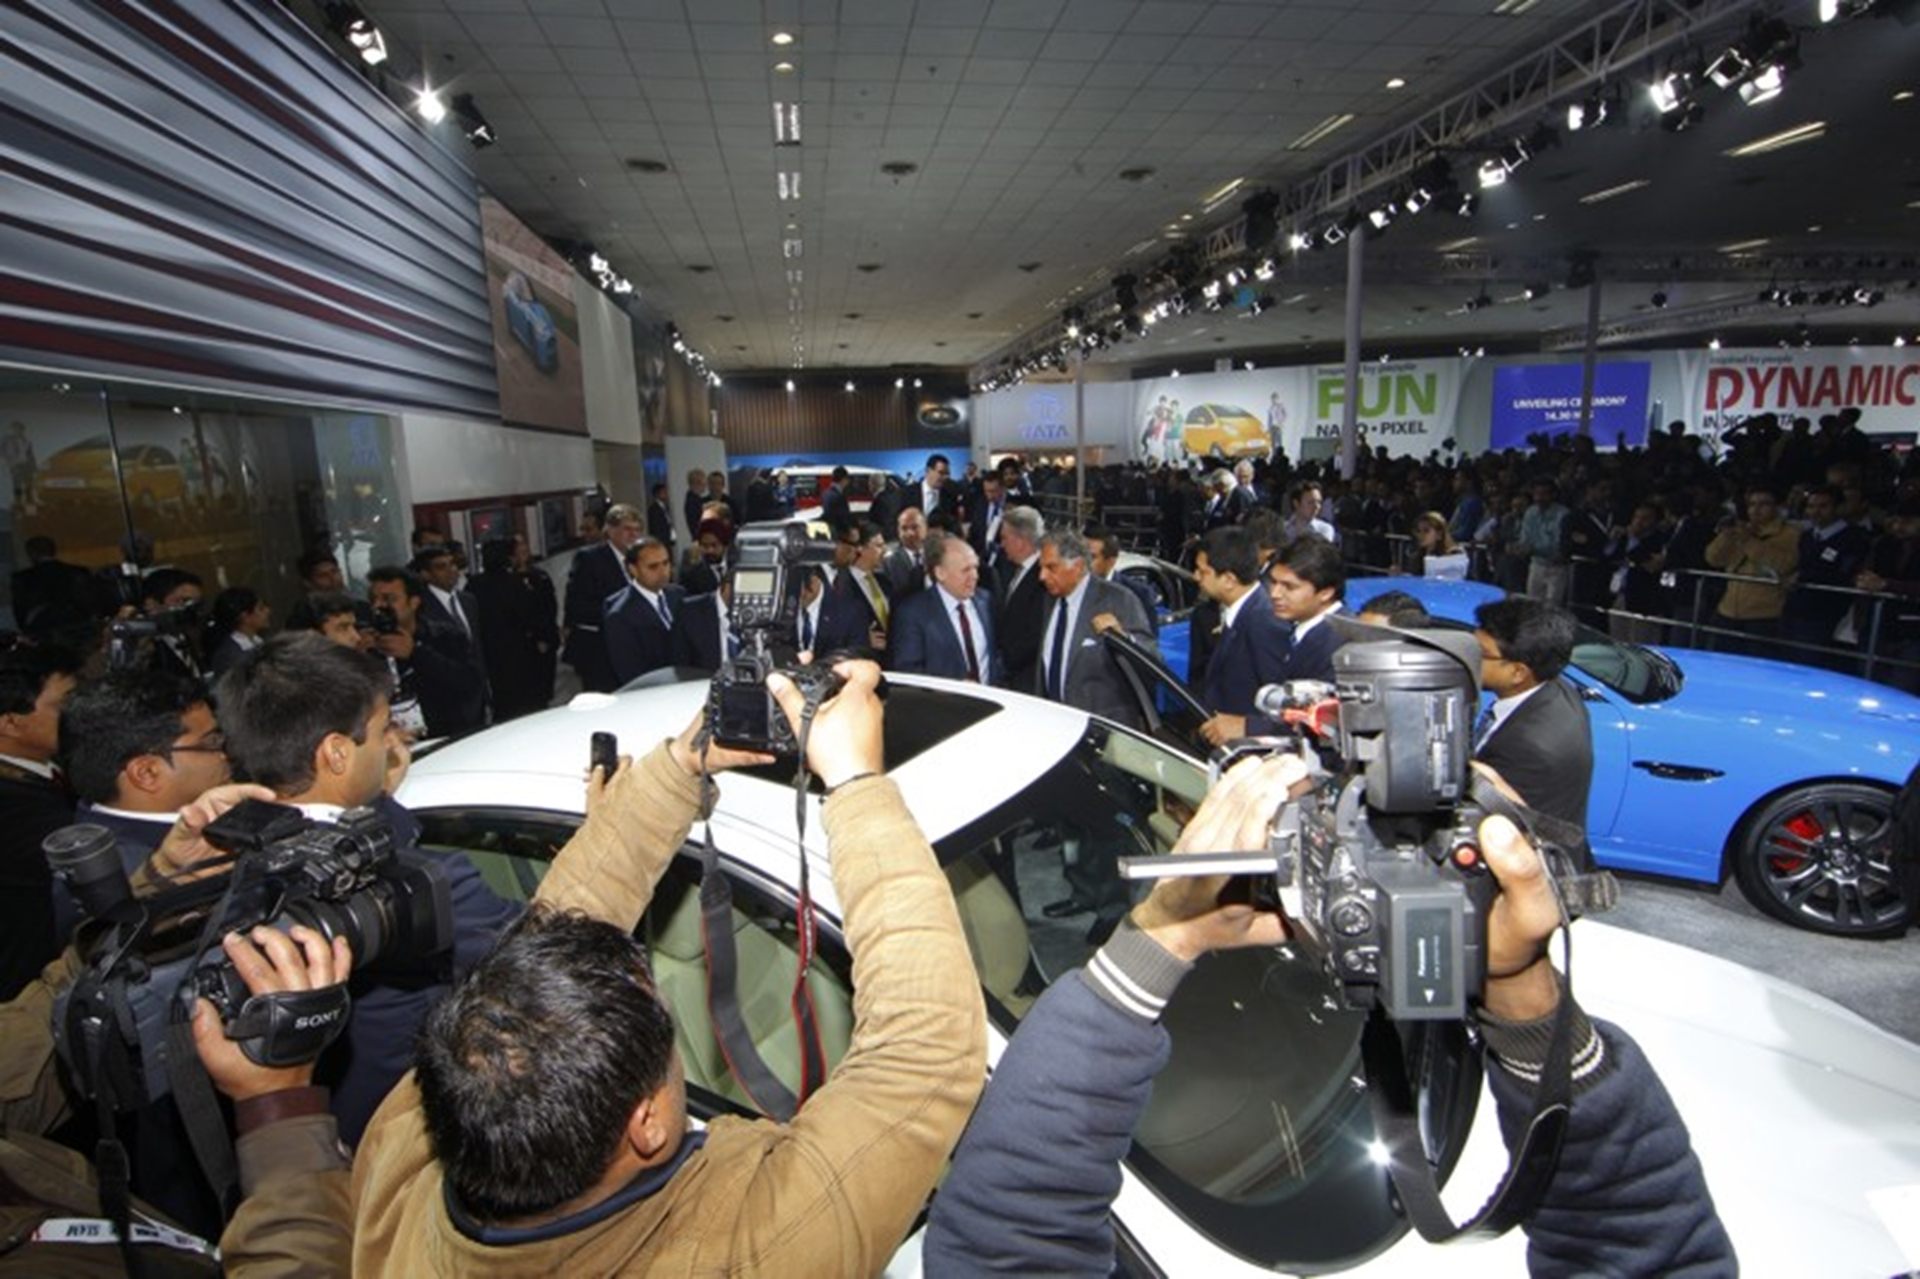 Press inundate the JLR showstand after the press conference